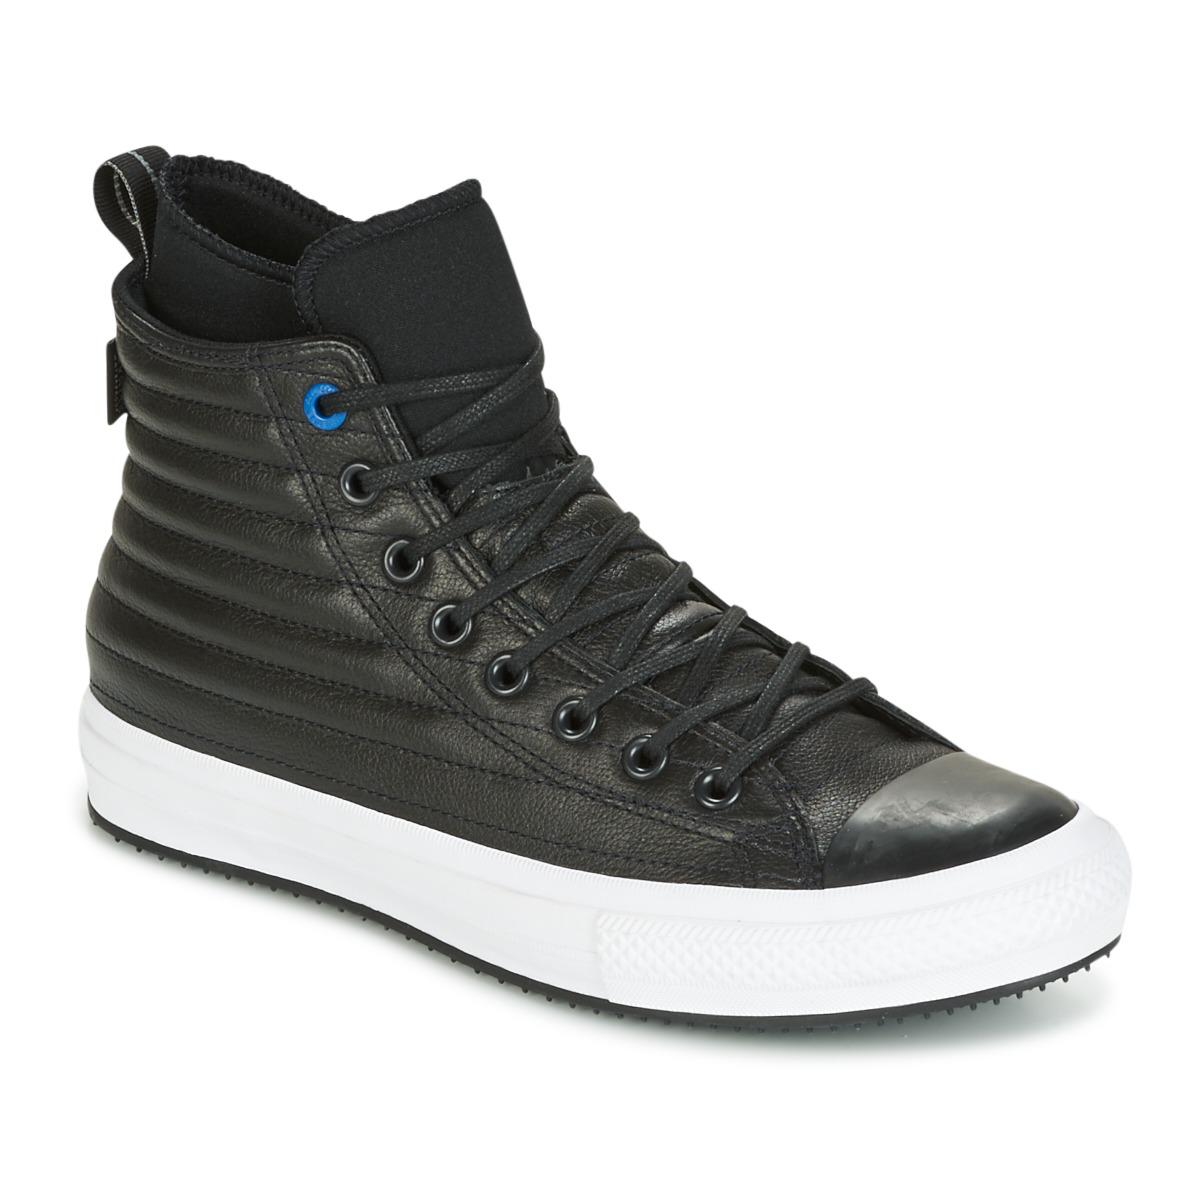 4cd775f54d1499 Converse. Chuck Taylor Wp Boot Quilted Leather Hi Black blue Jay white  Men s Shoes (high-top ...